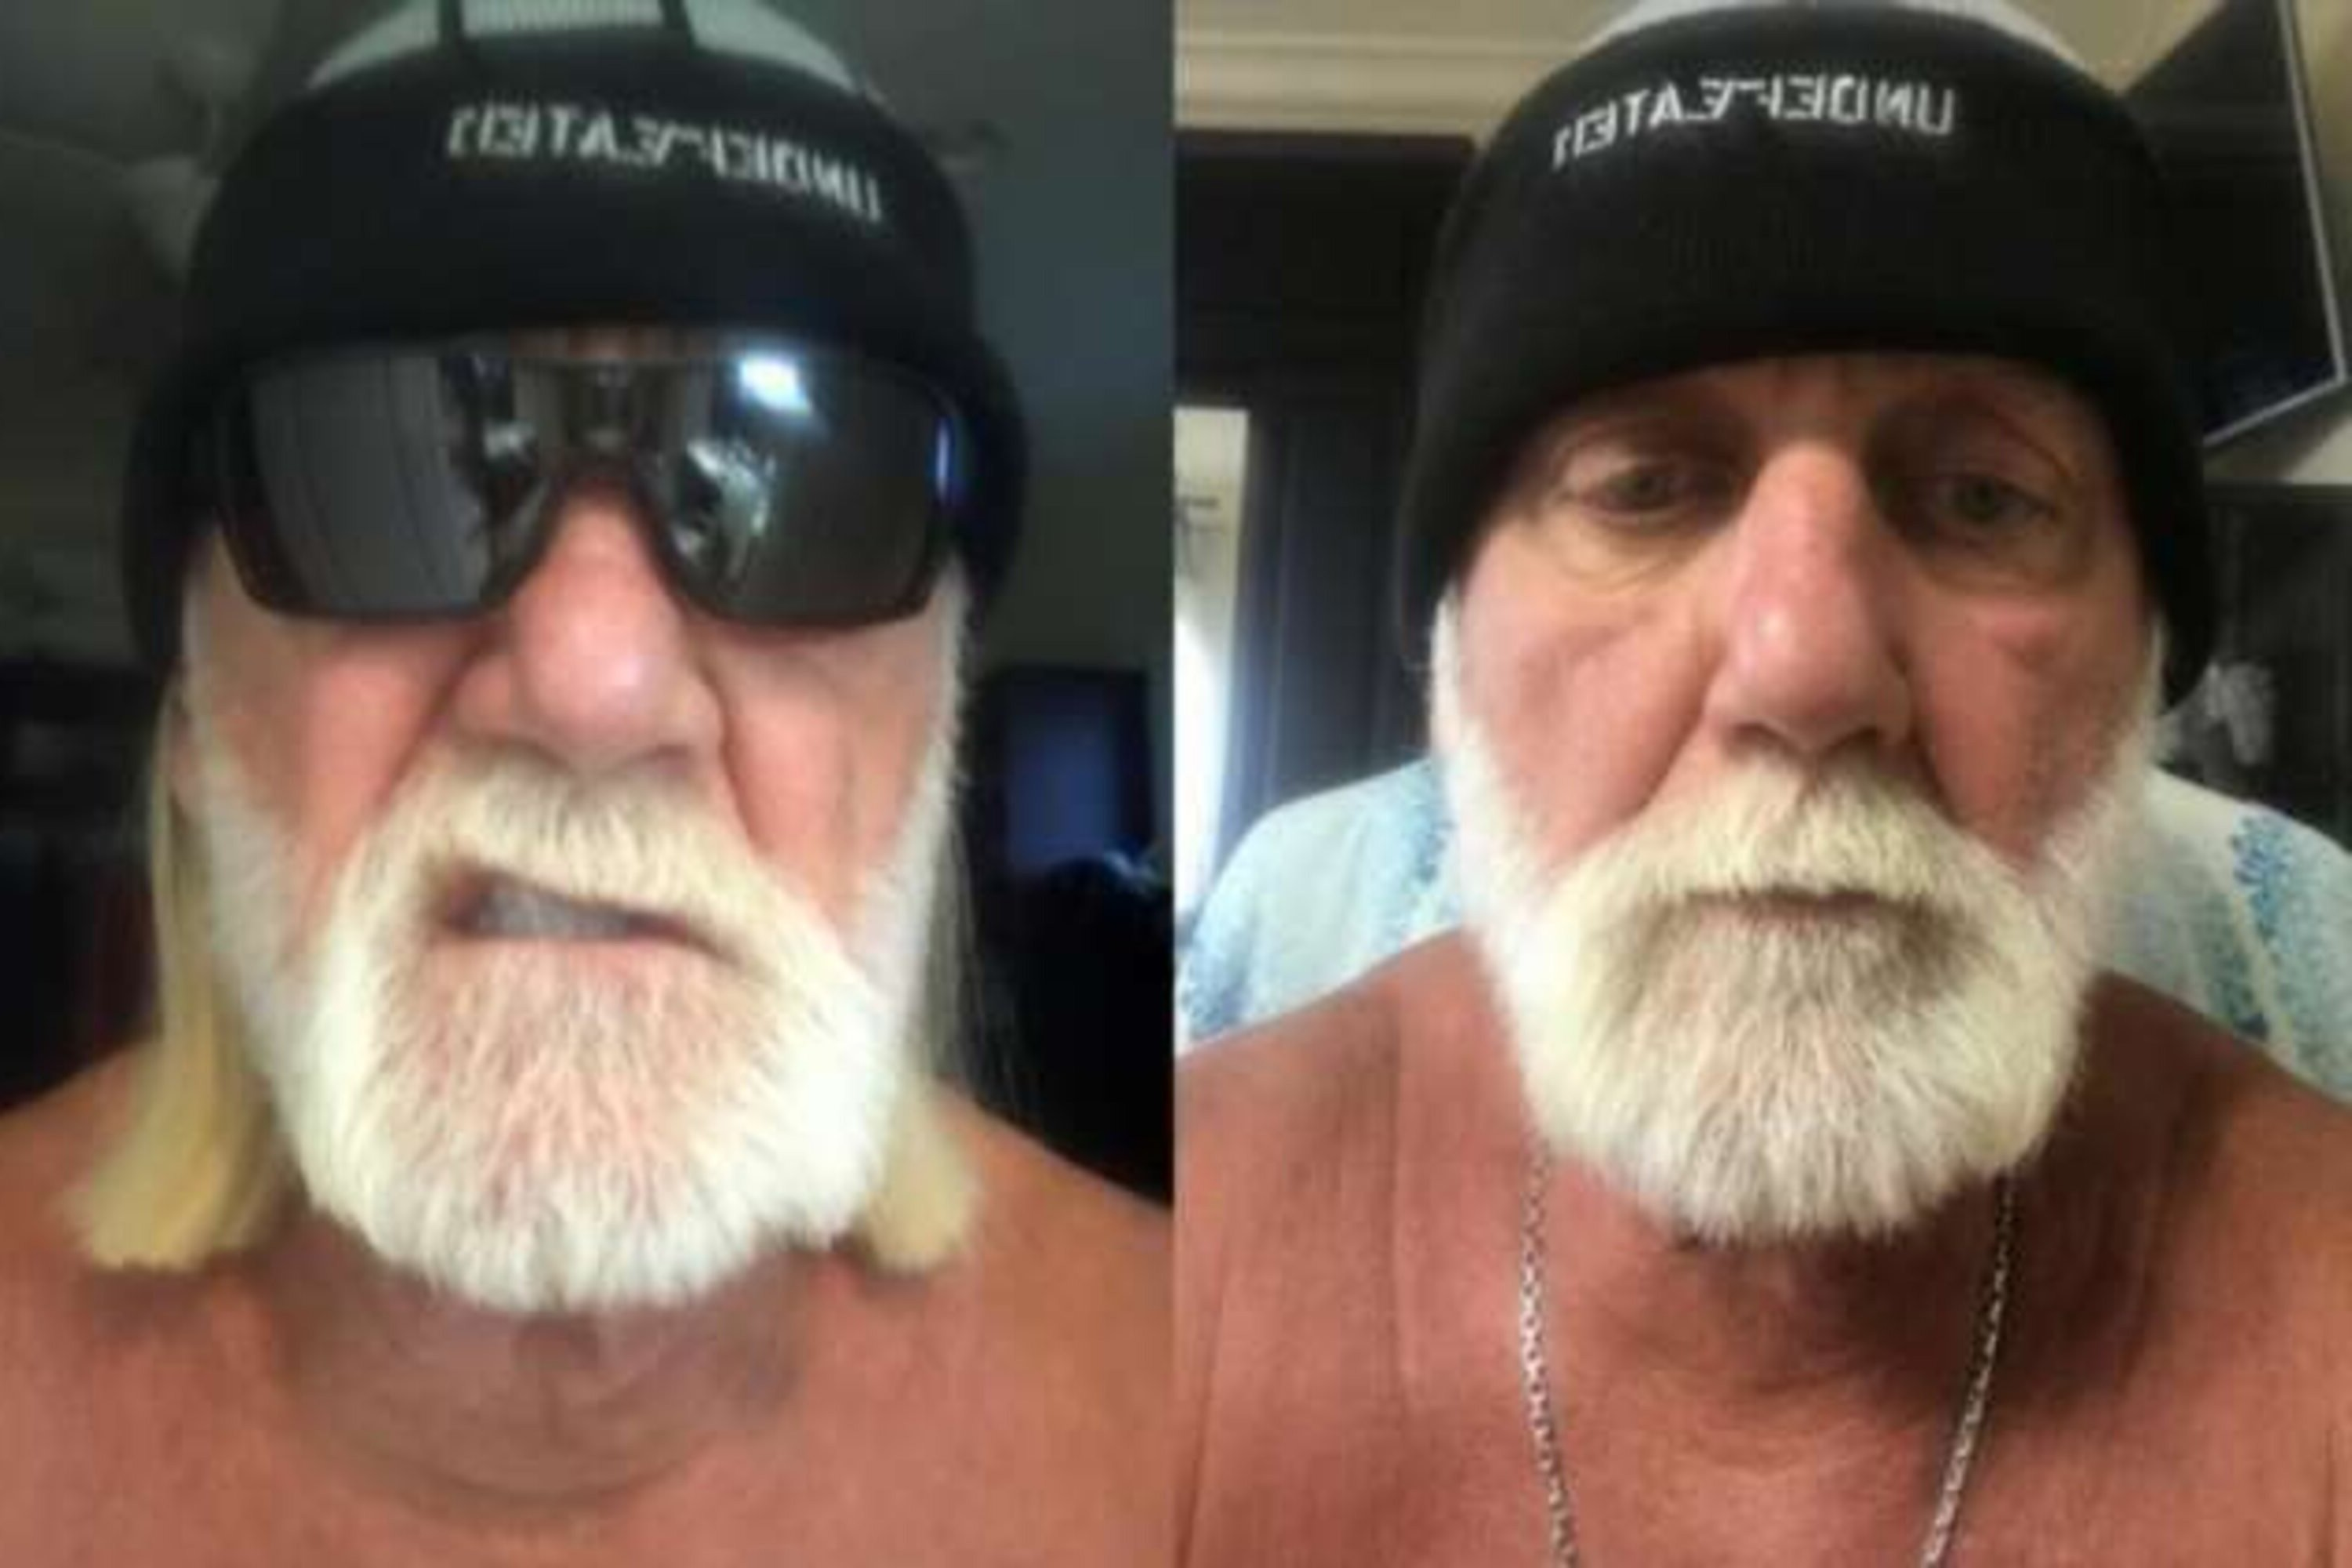 A full beard like Hulk Hogan has.